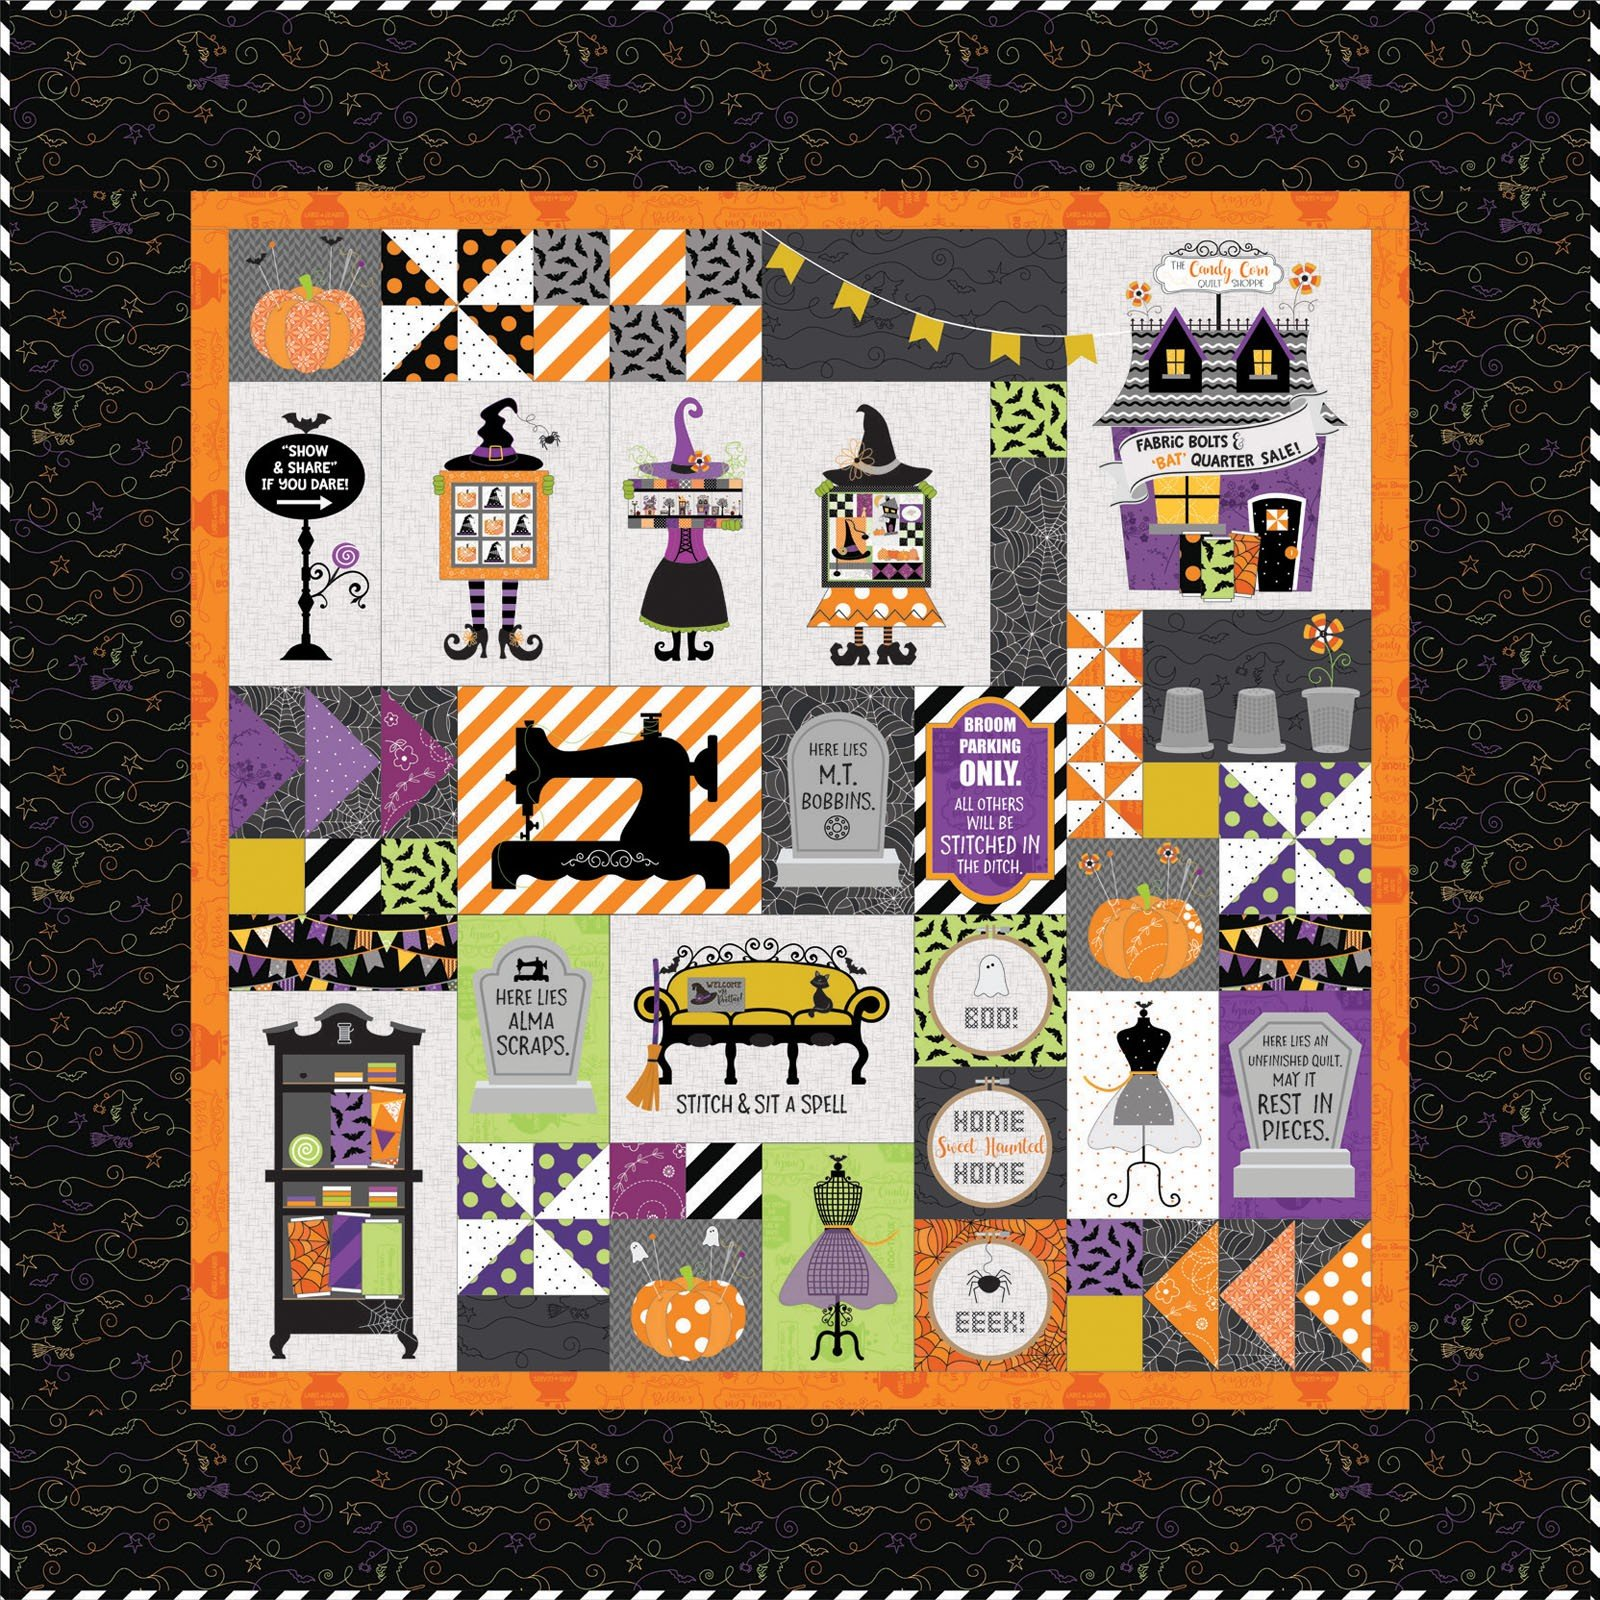 Candy Corn Quilt Shoppe (Embroidery CD) by Kimberbell